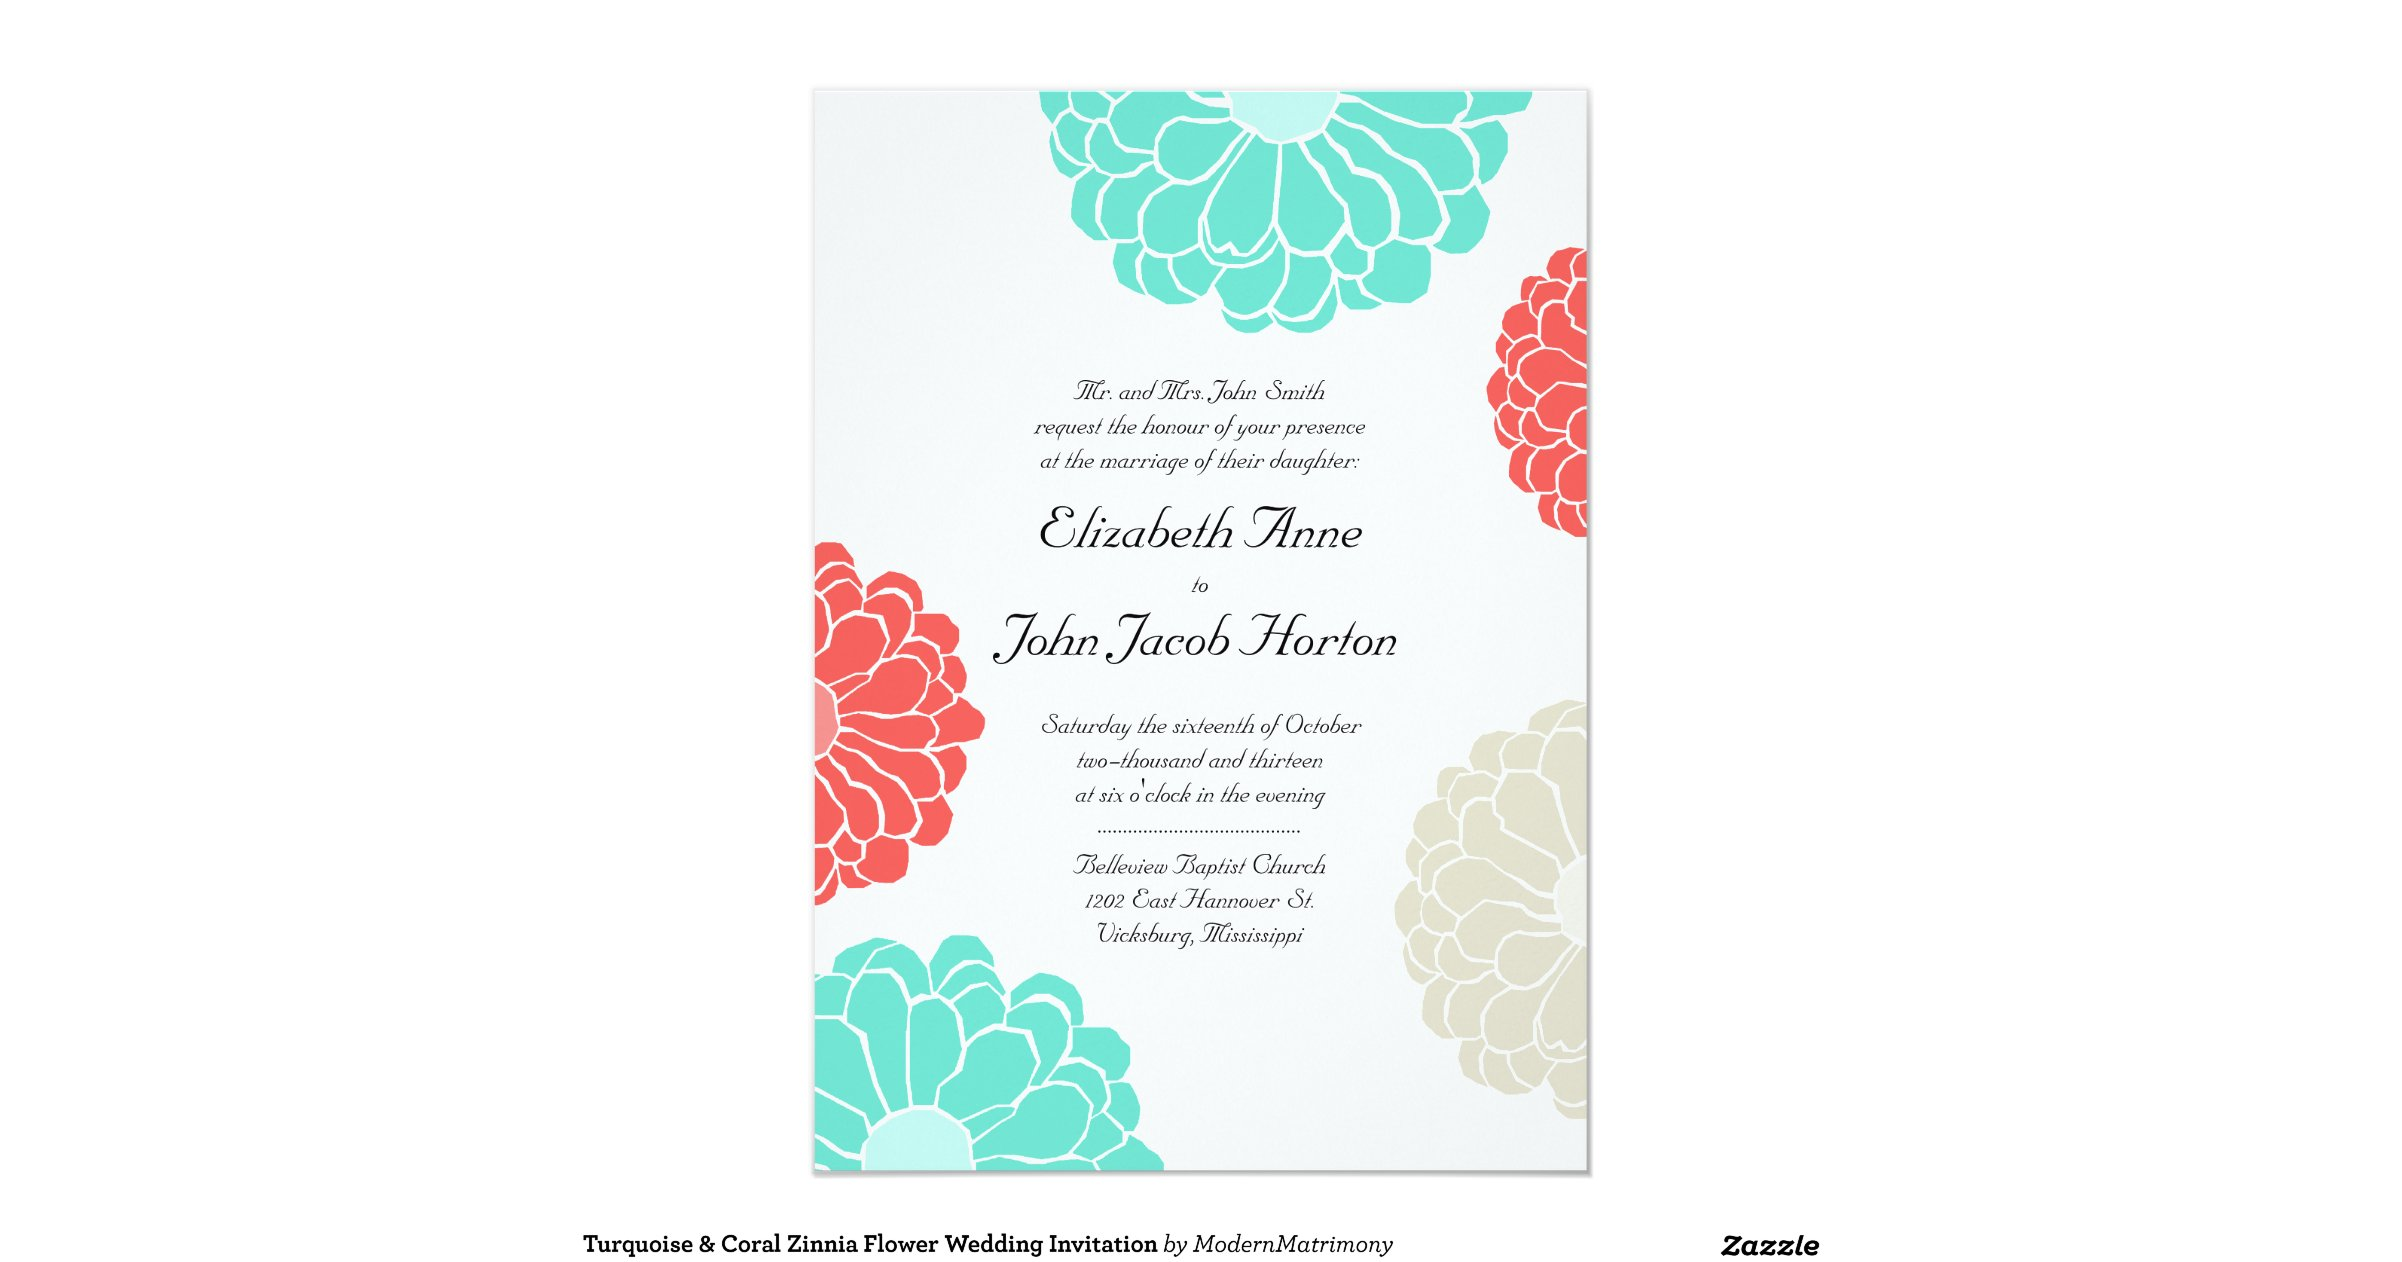 Turquoise And Coral Wedding Invitations: Turquoise_coral_zinnia_flower_wedding_invitation